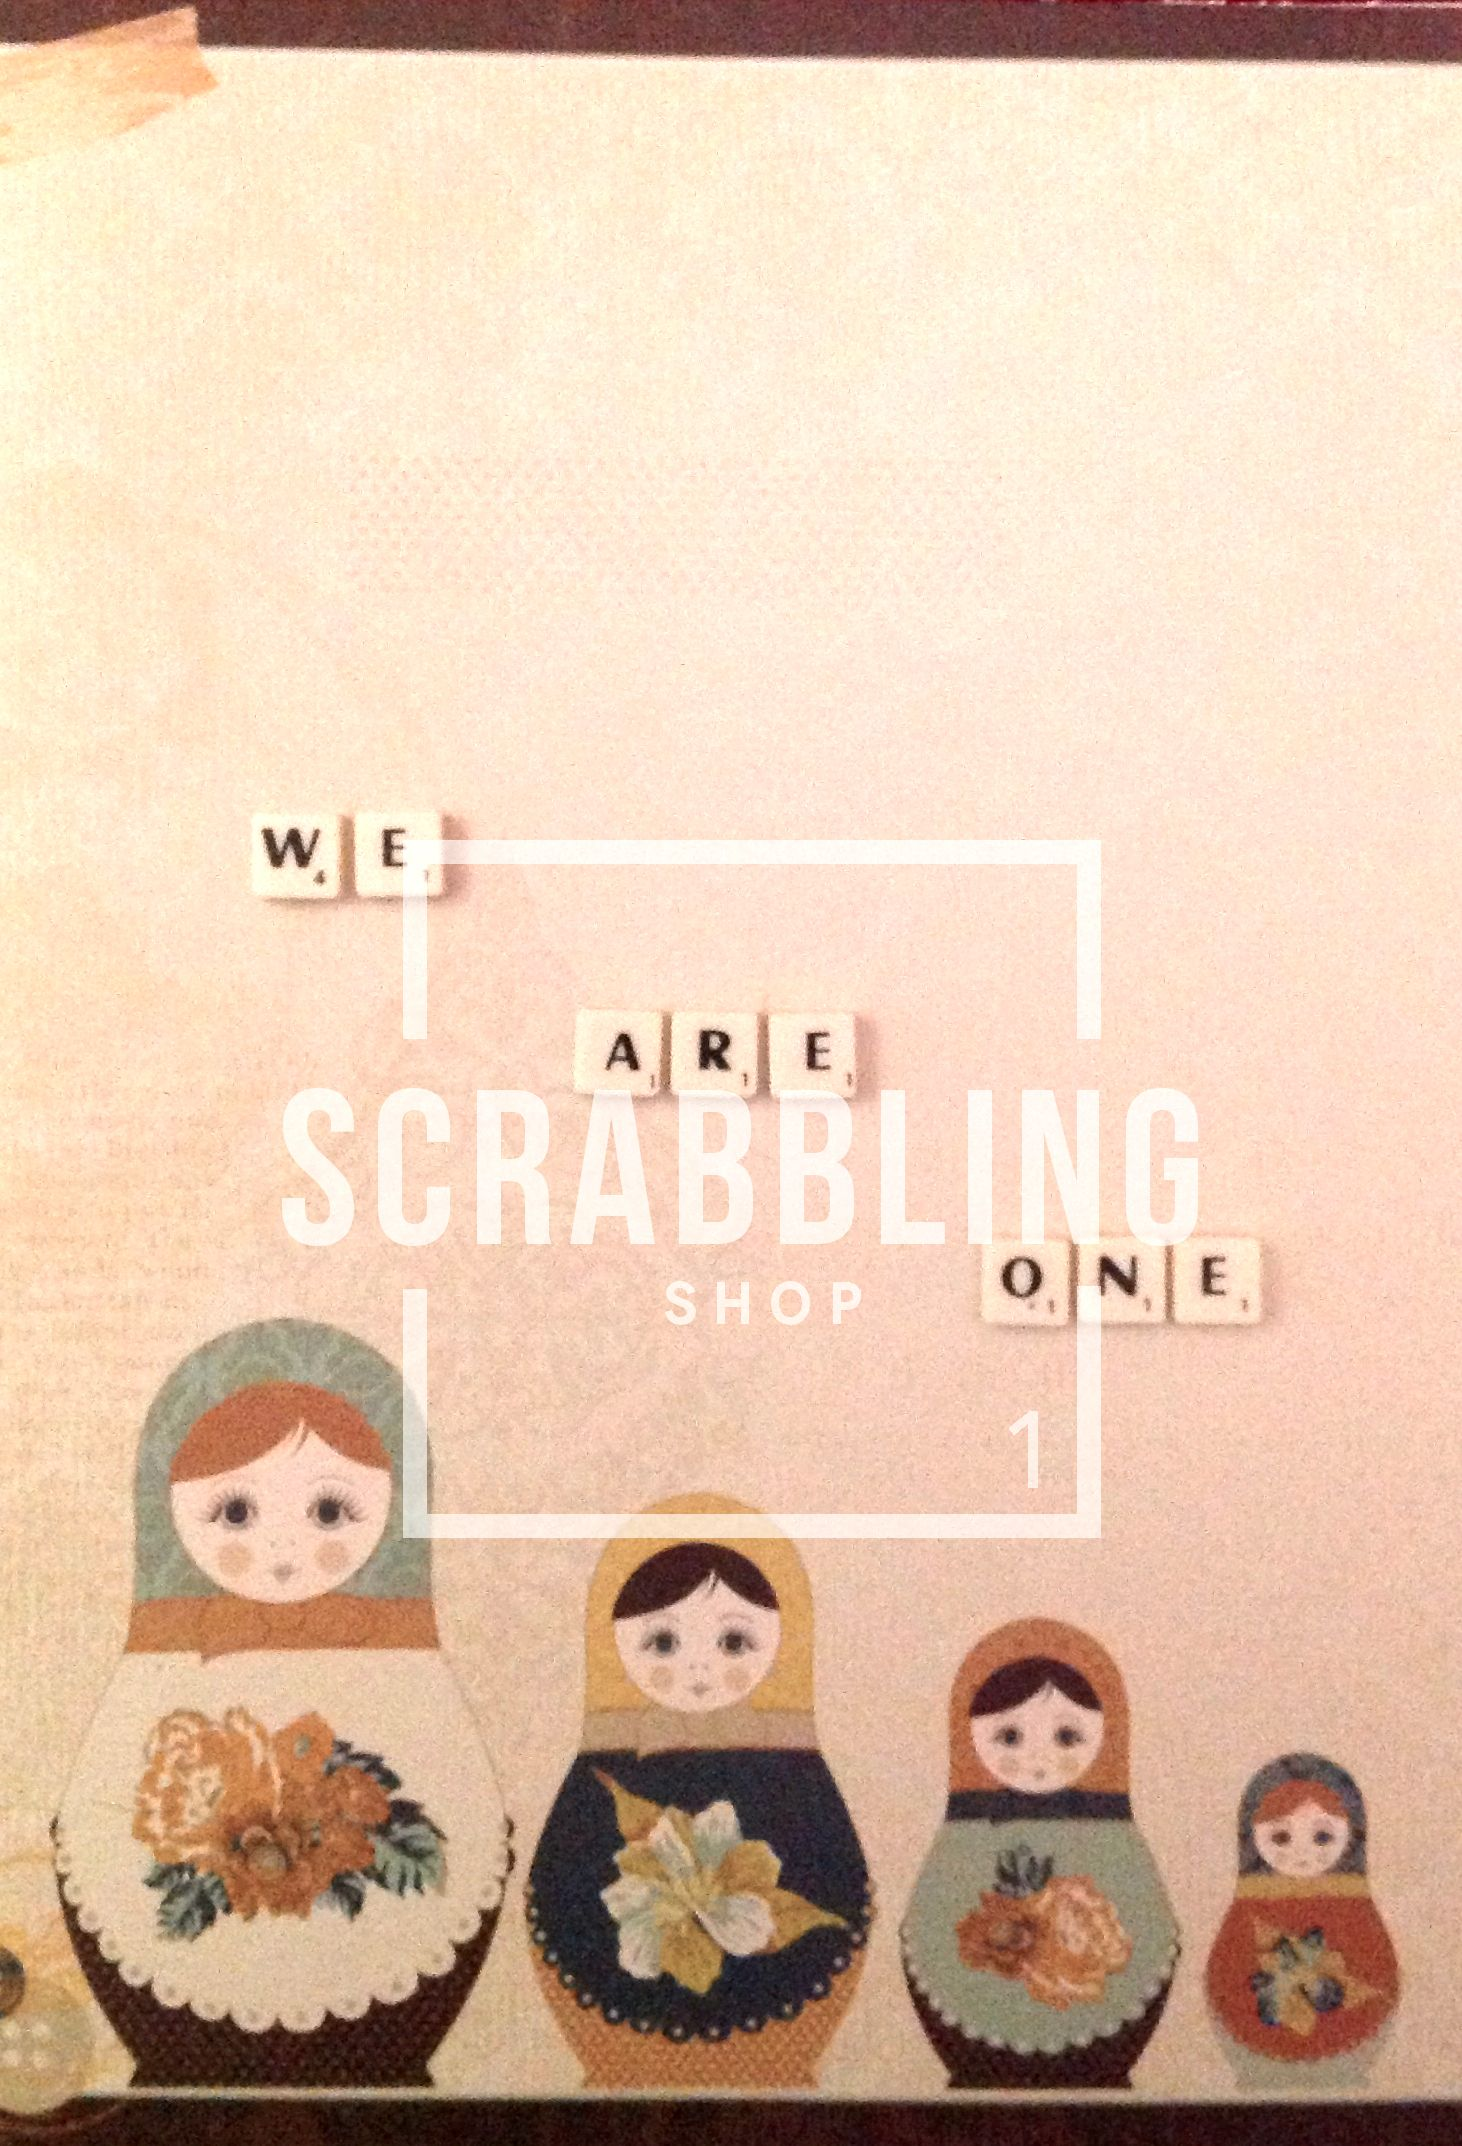 We are One www.scrabblingshop.com